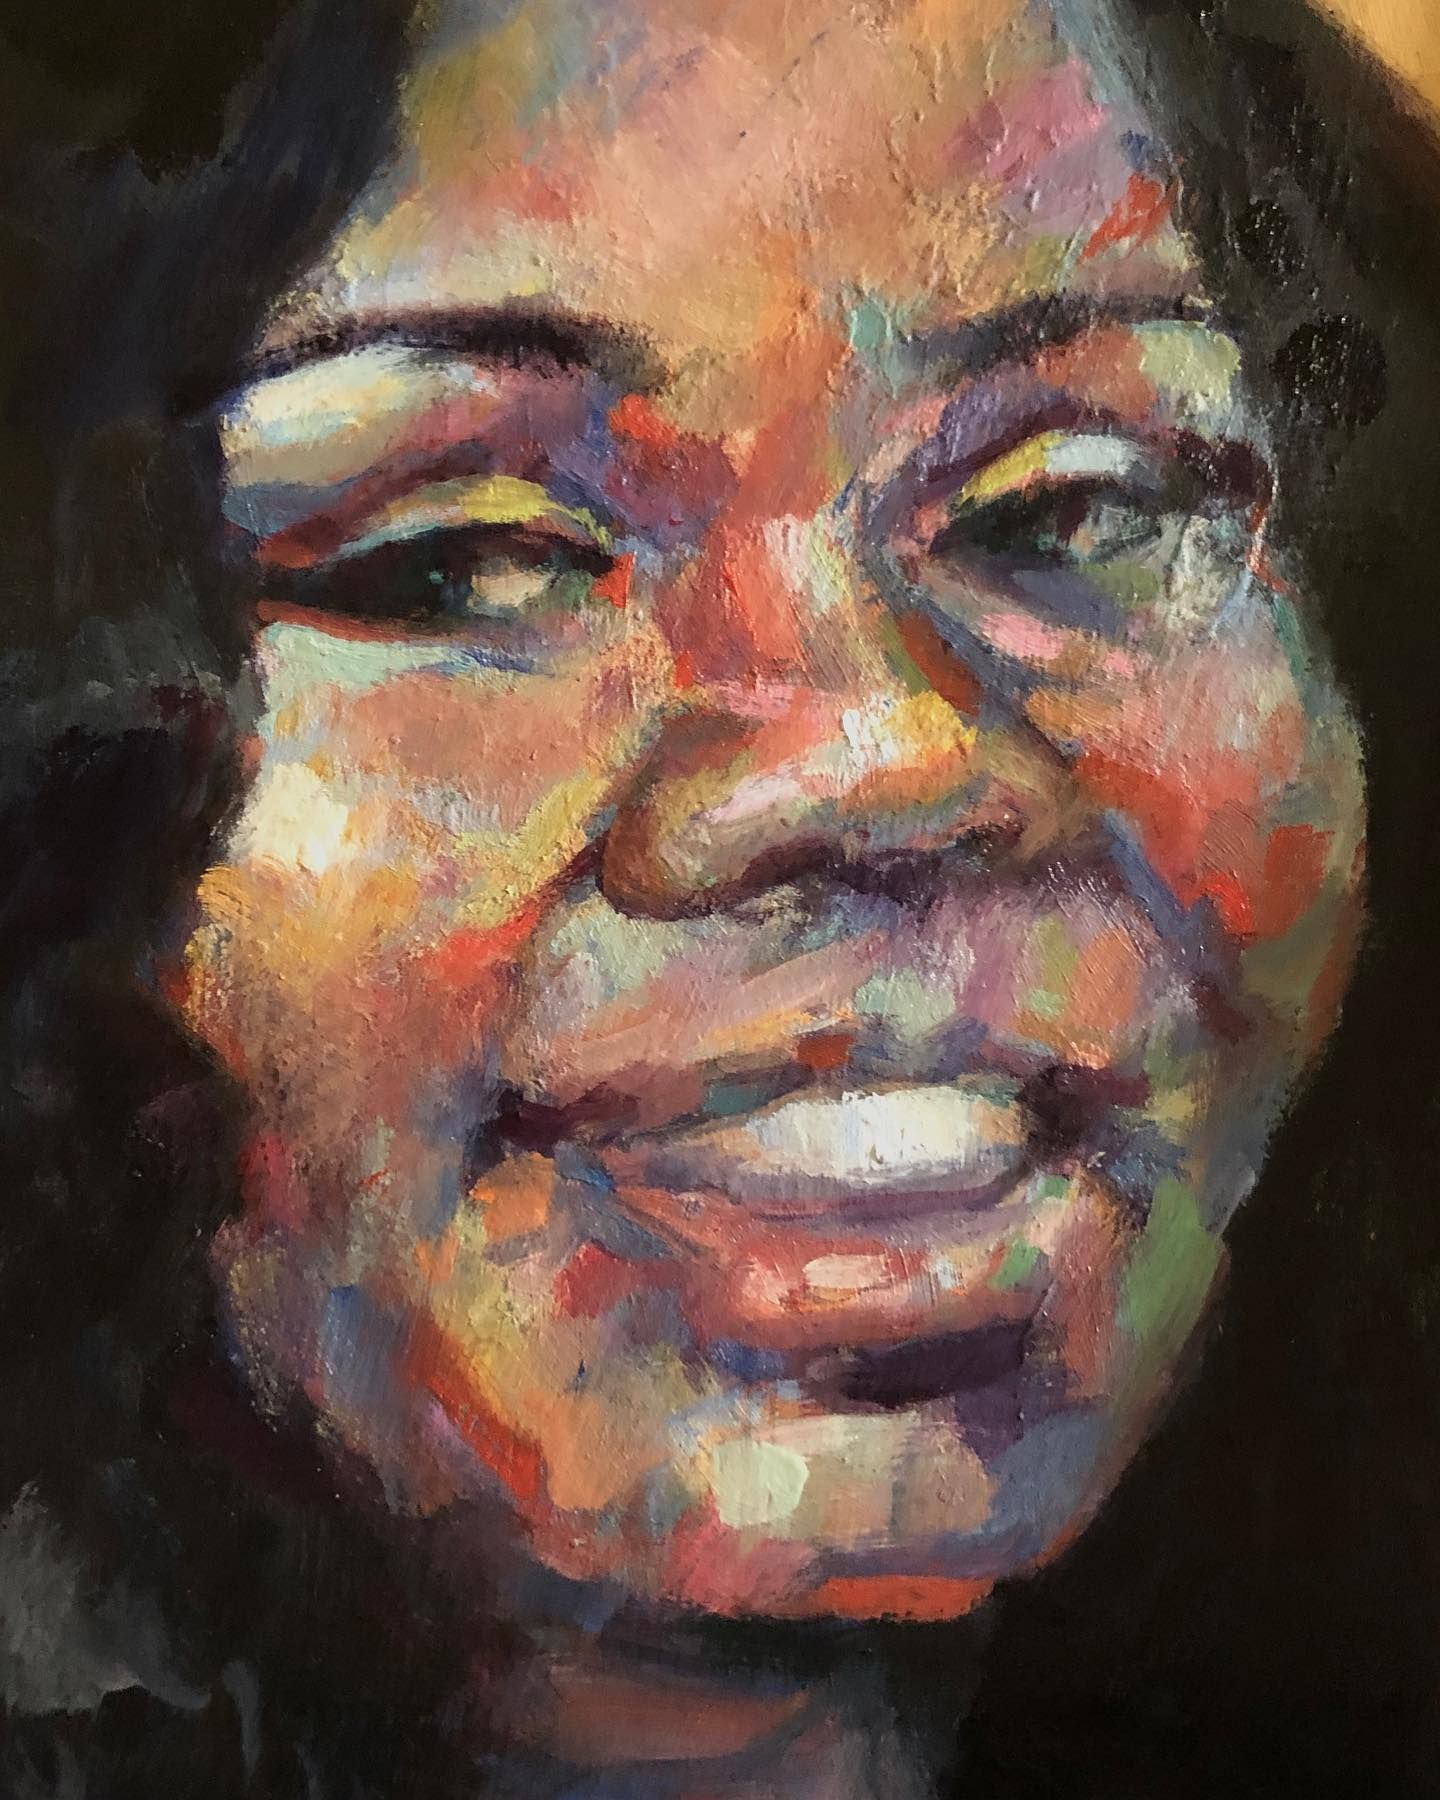 One Small Memorial Among Many For Breonna Taylor The Act Of Painting An Individuals Portrait Whose Life Was Ended So Tragica In 2020 Portrait Breonna Taylor Painting